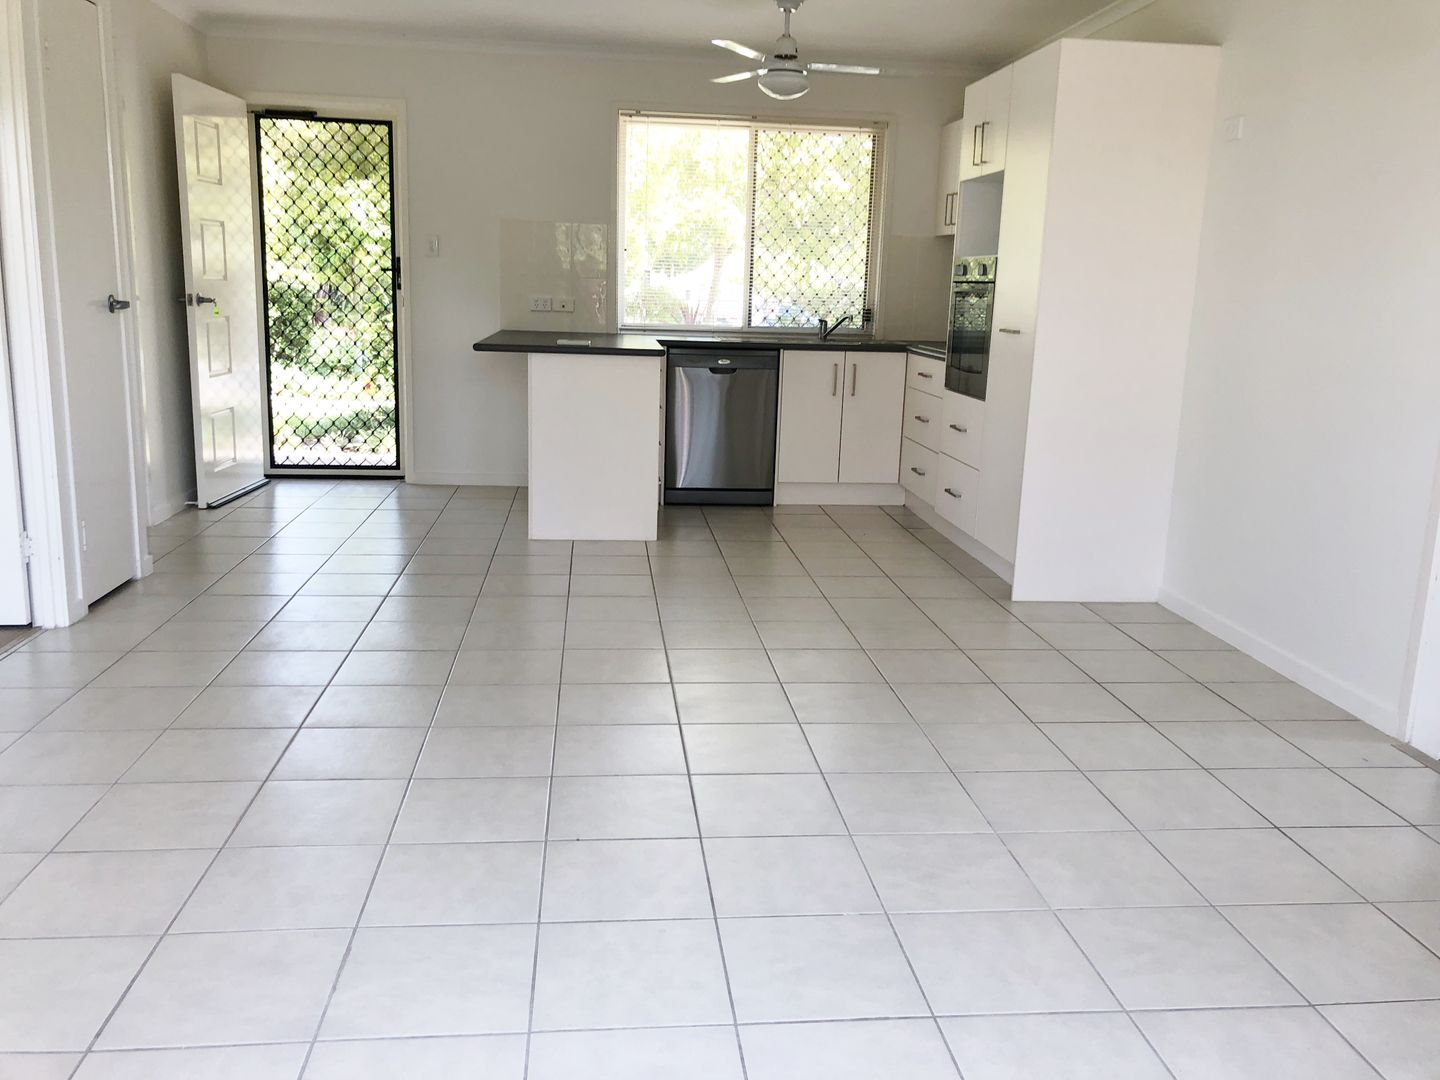 8 16 MARGARET STREET, Woodford QLD 4514, Image 2